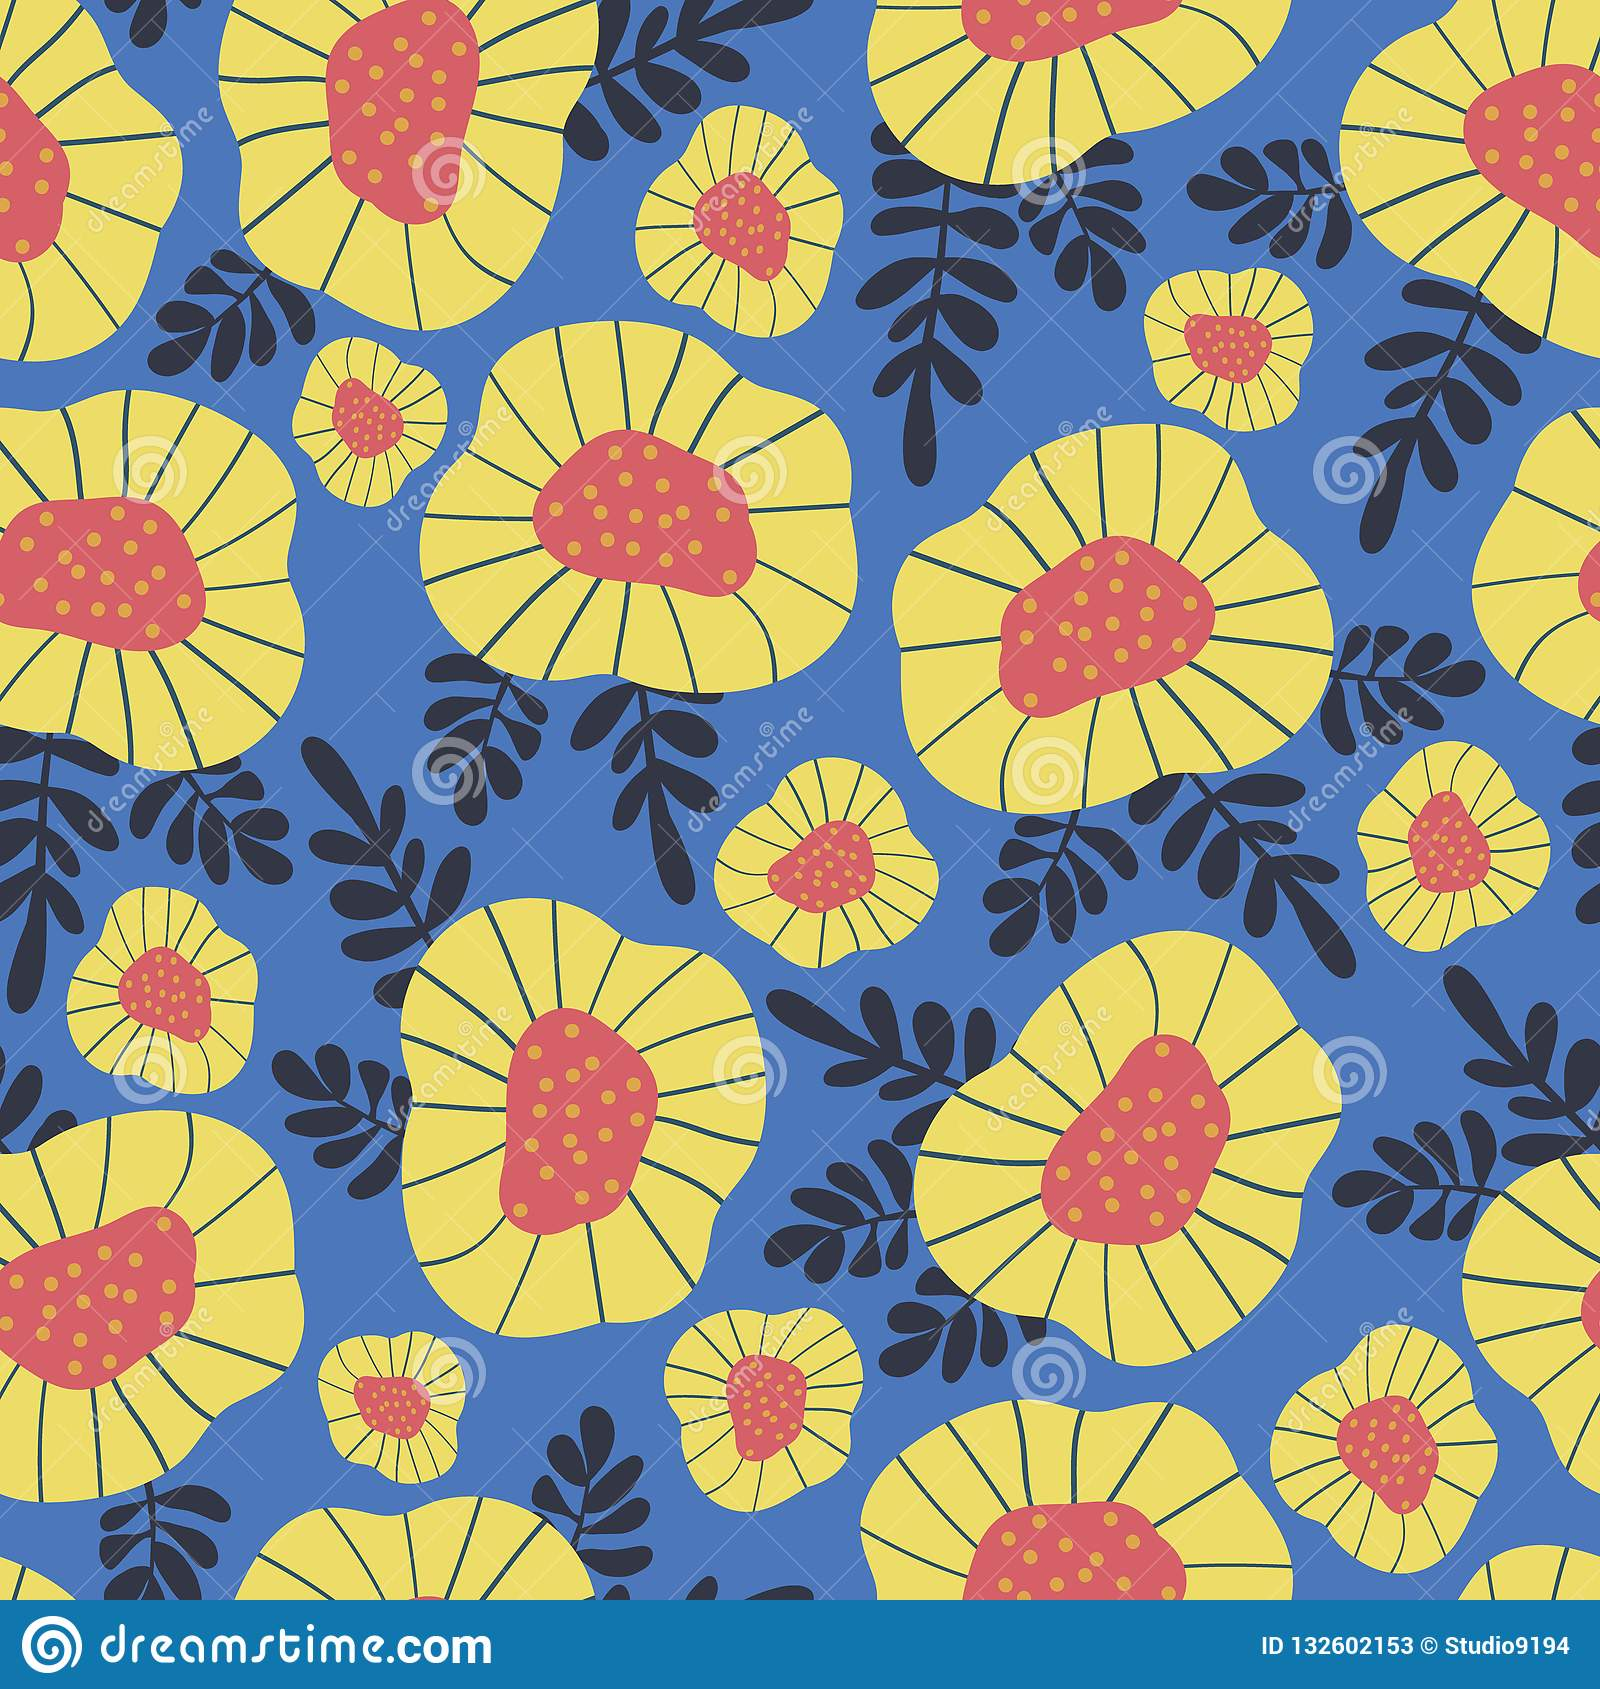 Scandinavian Style Retro Flower Background Seamless Floral Vector